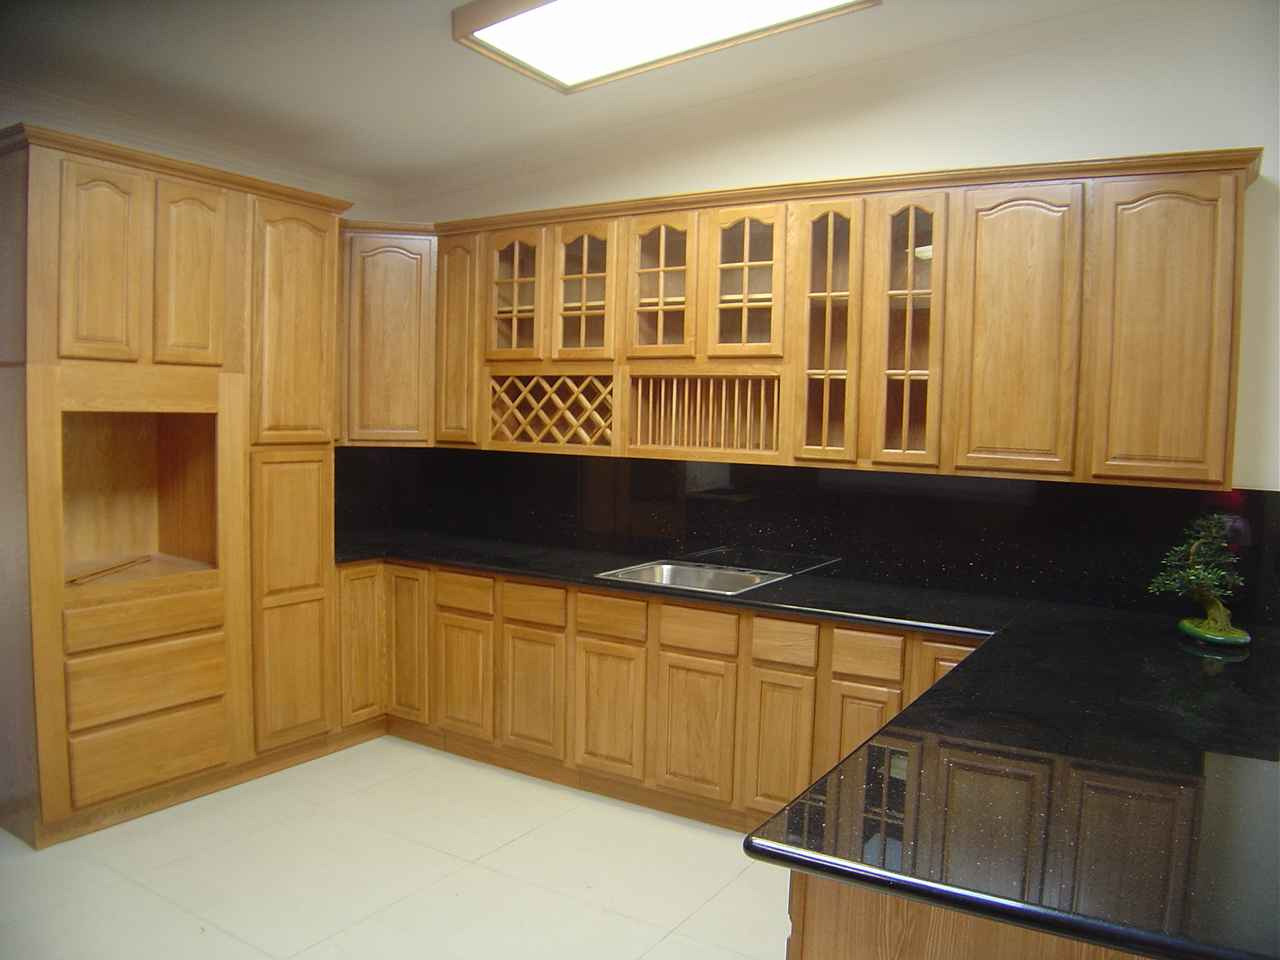 Countertop Designs Brilliant With Oak Kitchen Cabinets Design Ideas Images